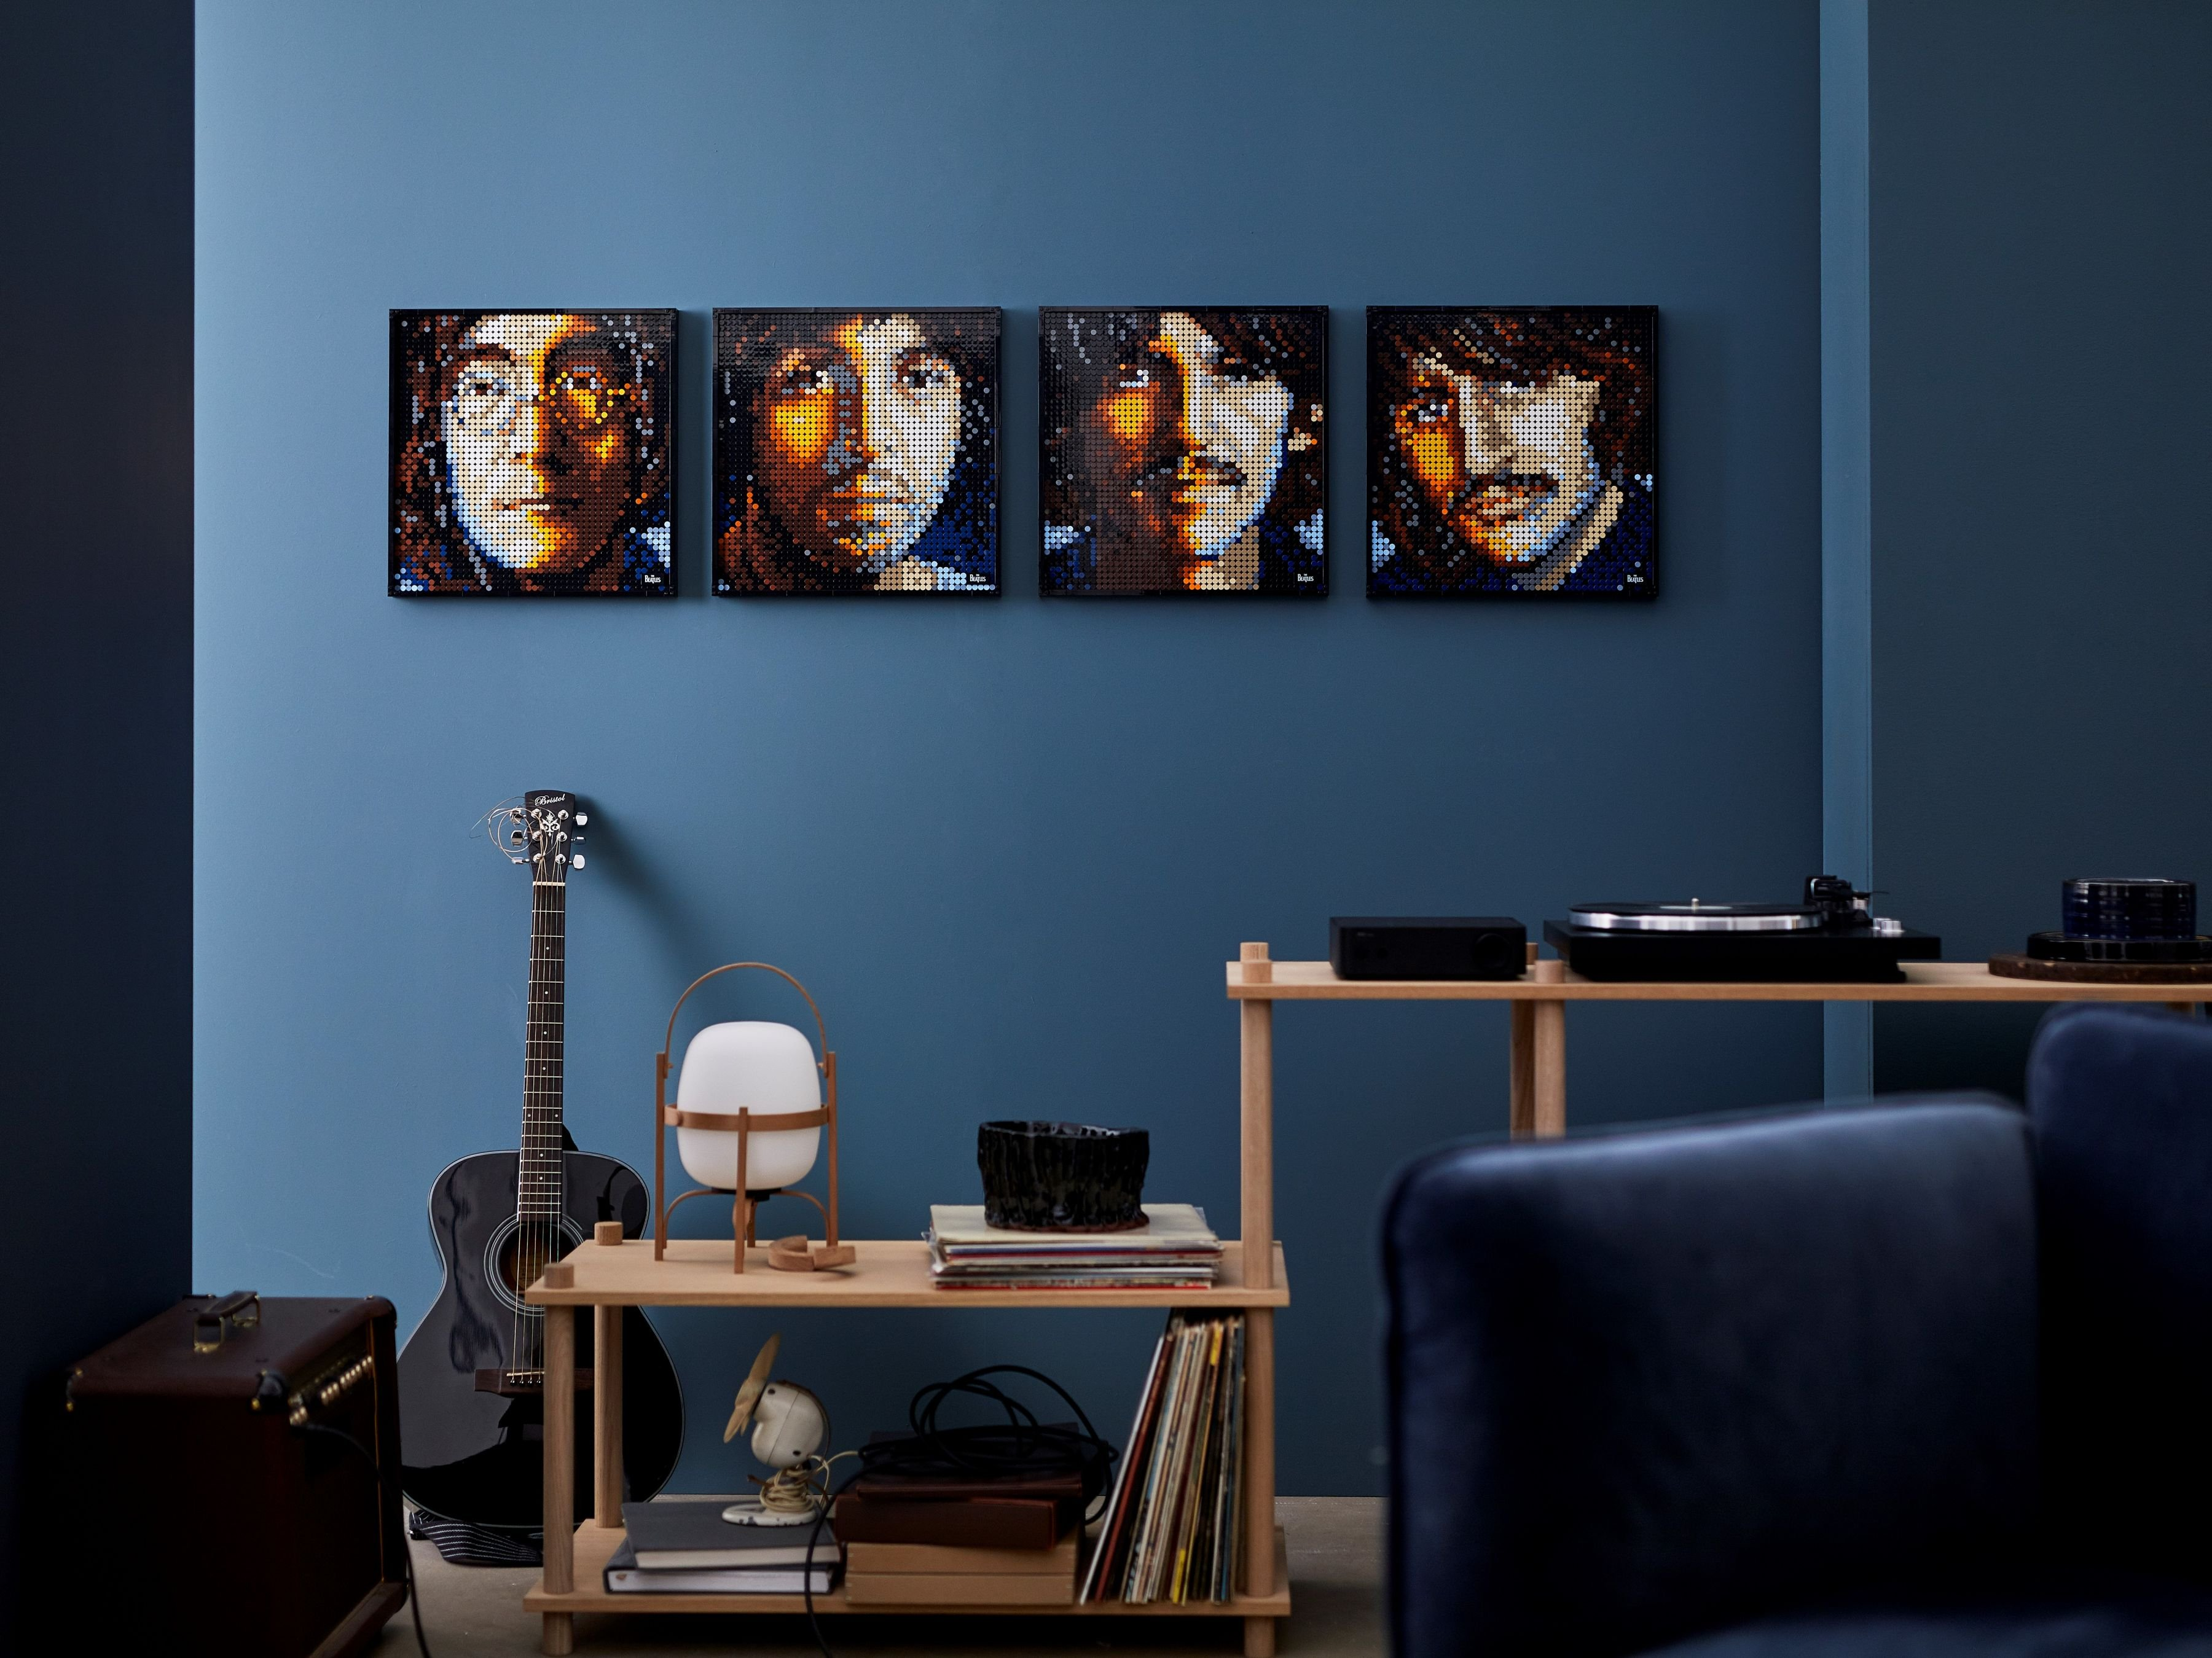 LEGO Art 31198 The Beatles LEGO_31198_alt23.jpg